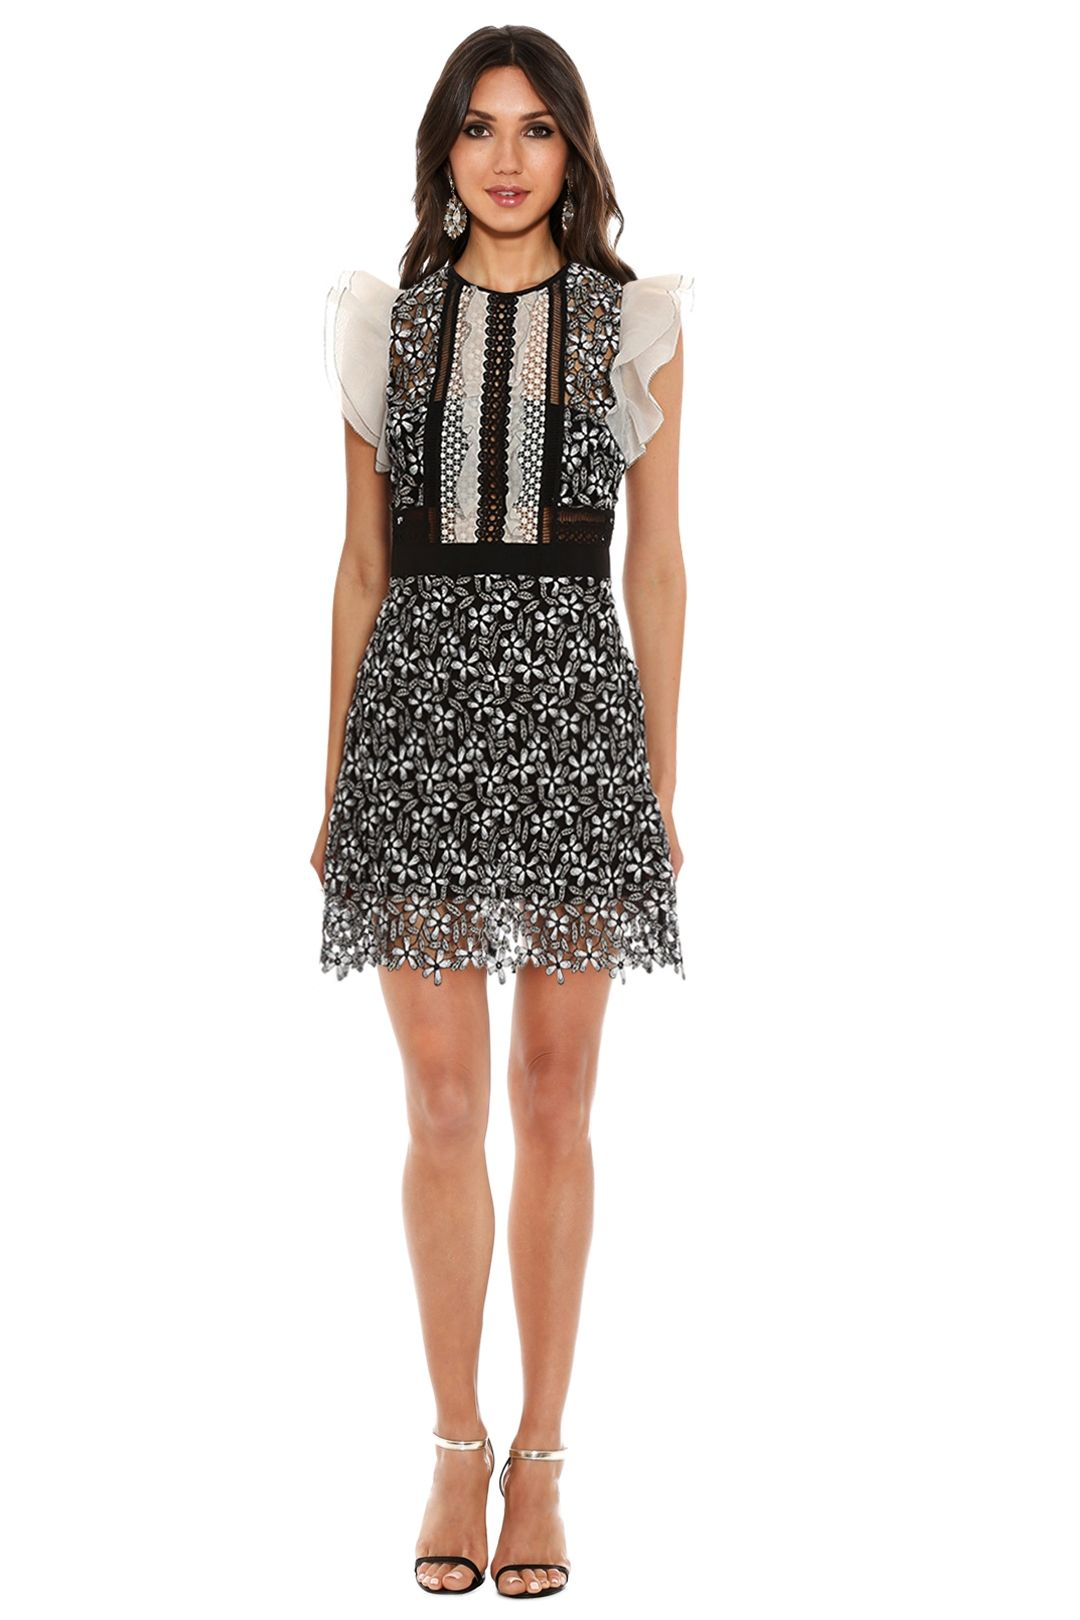 Self Portrait - Frill Sleeved Daisy Guipure Mini Dress - Black and White - Front